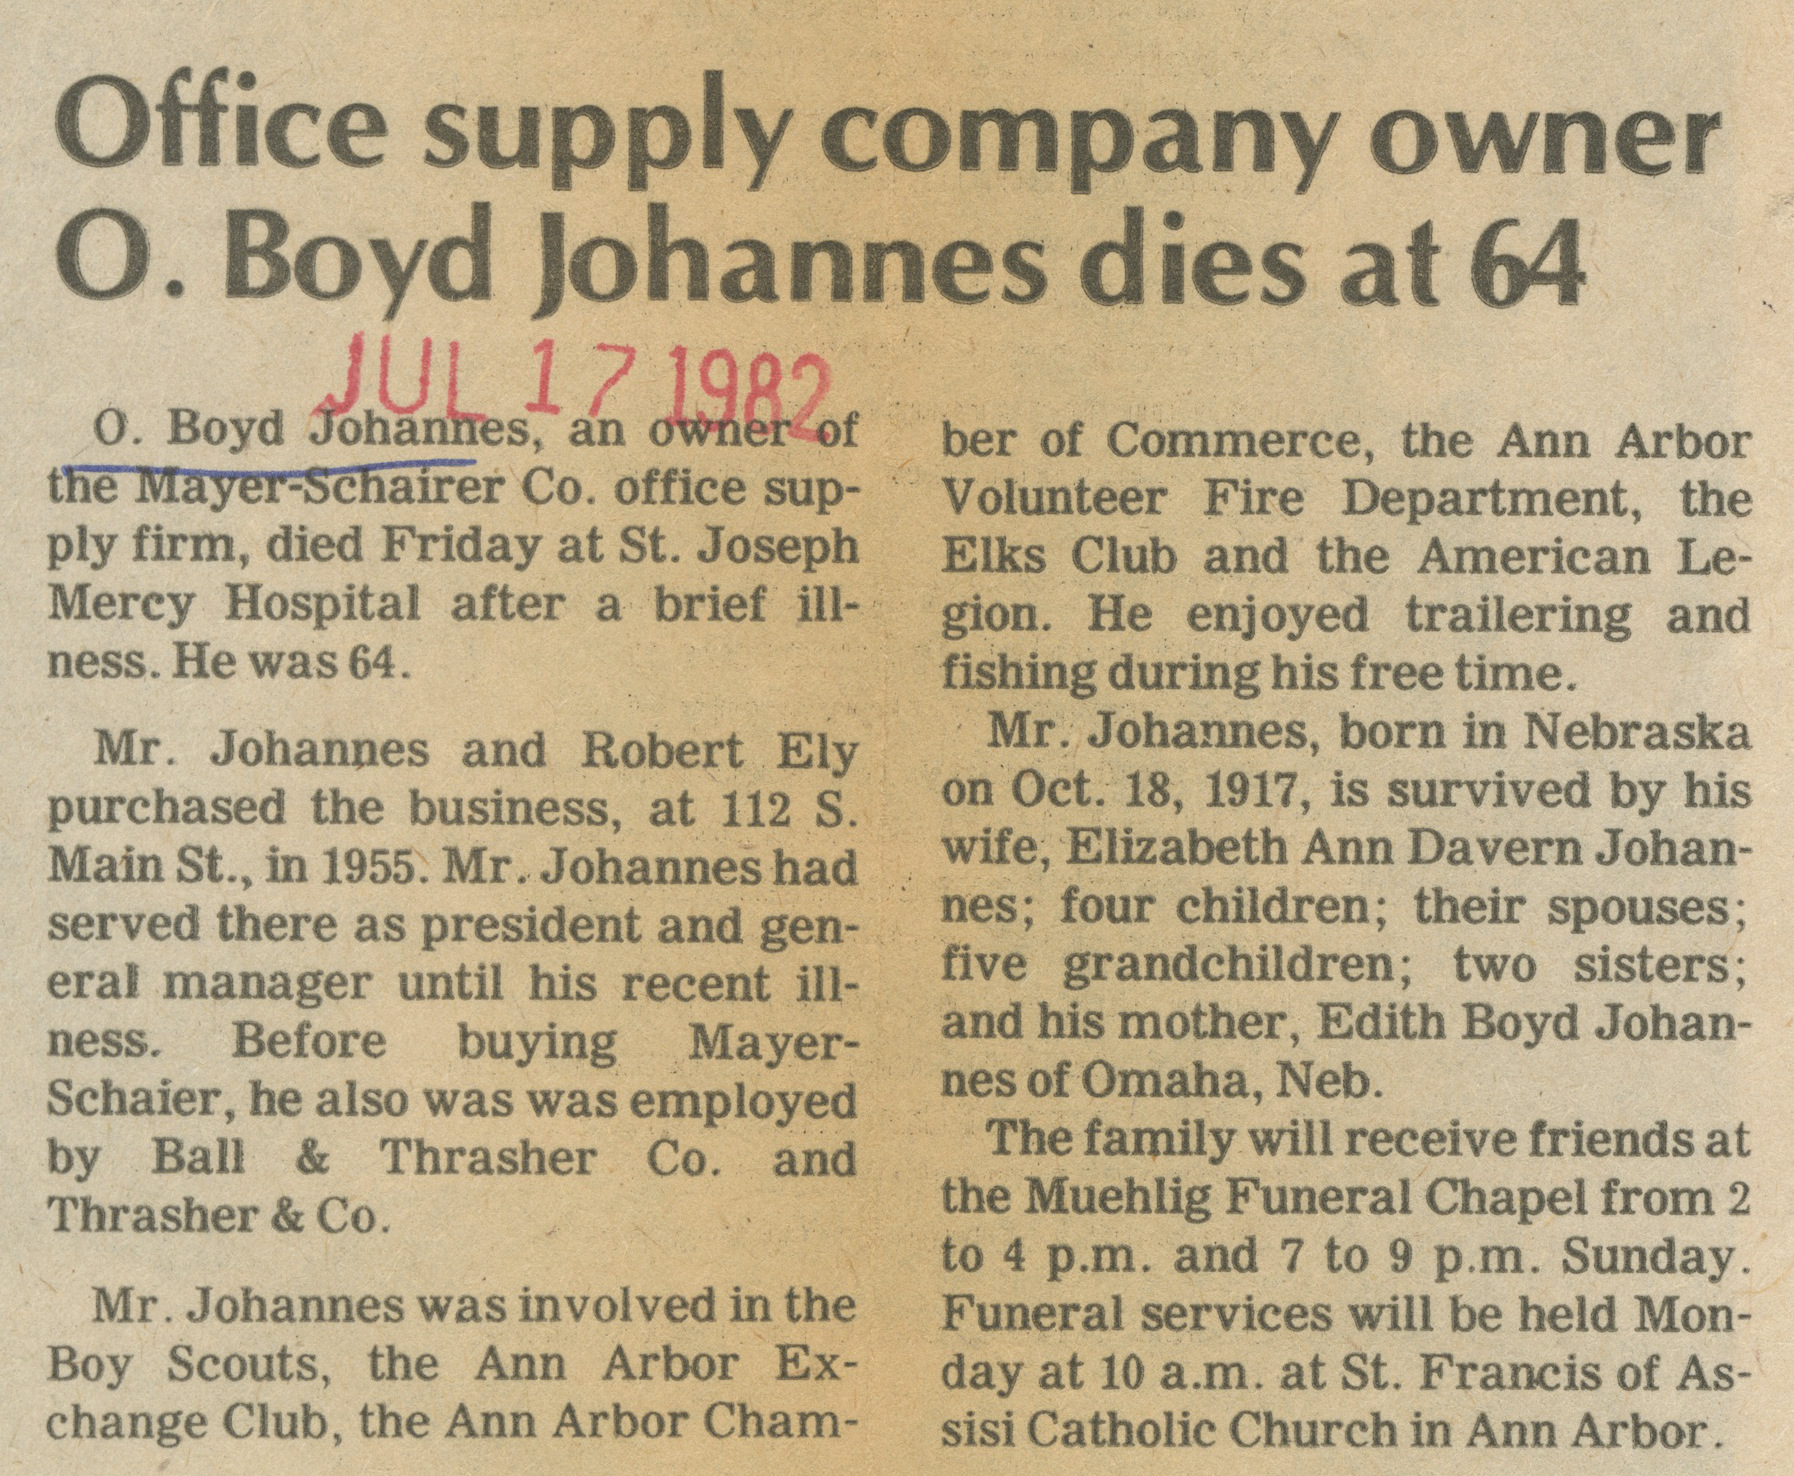 Office Supply Company Owner O. Boyd Johannes Dies At 64 image